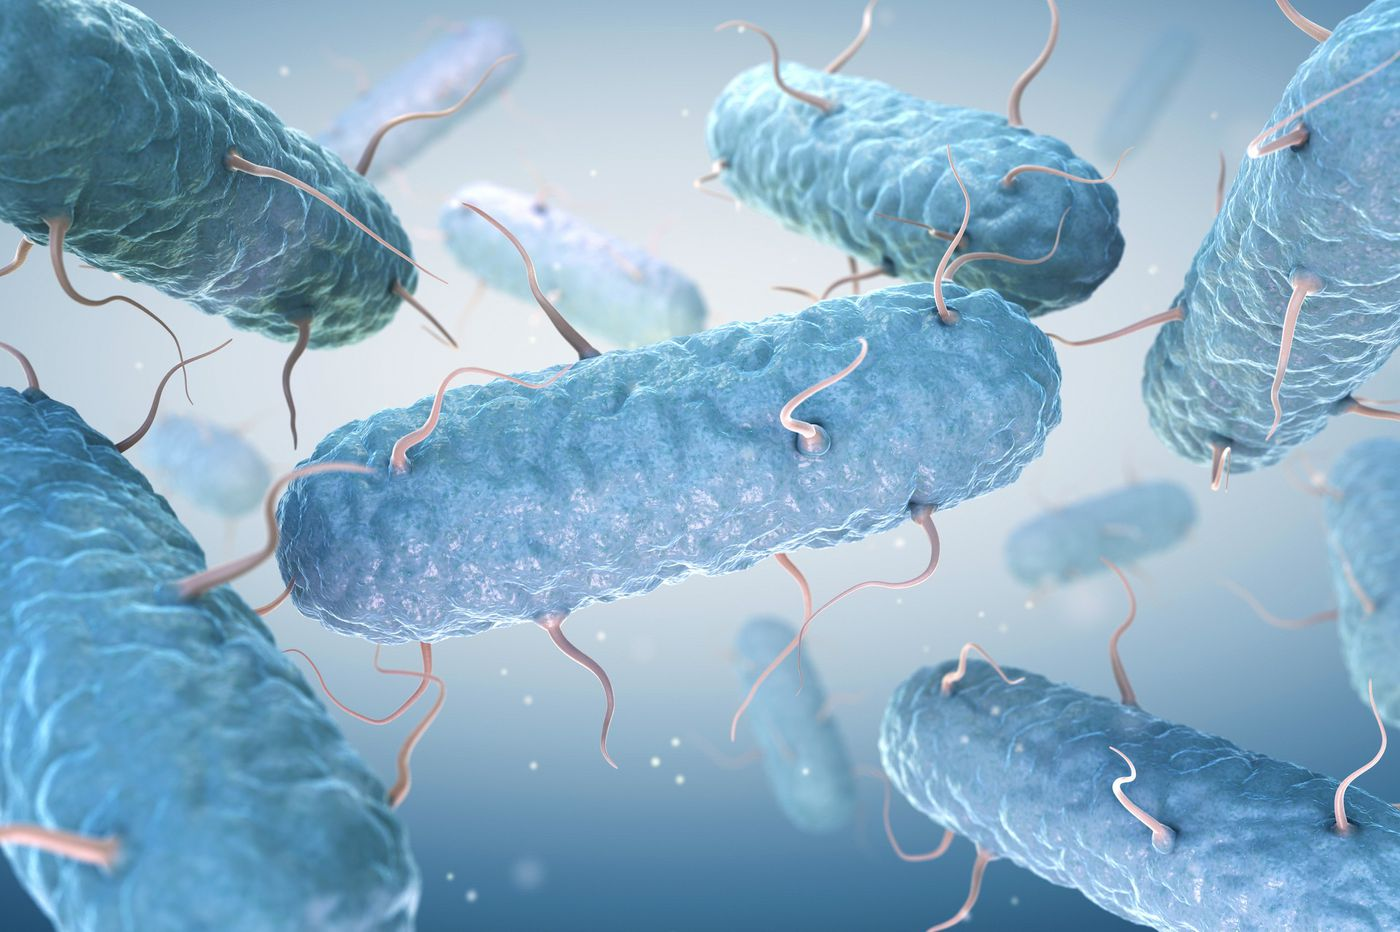 E. coli: What you need to know